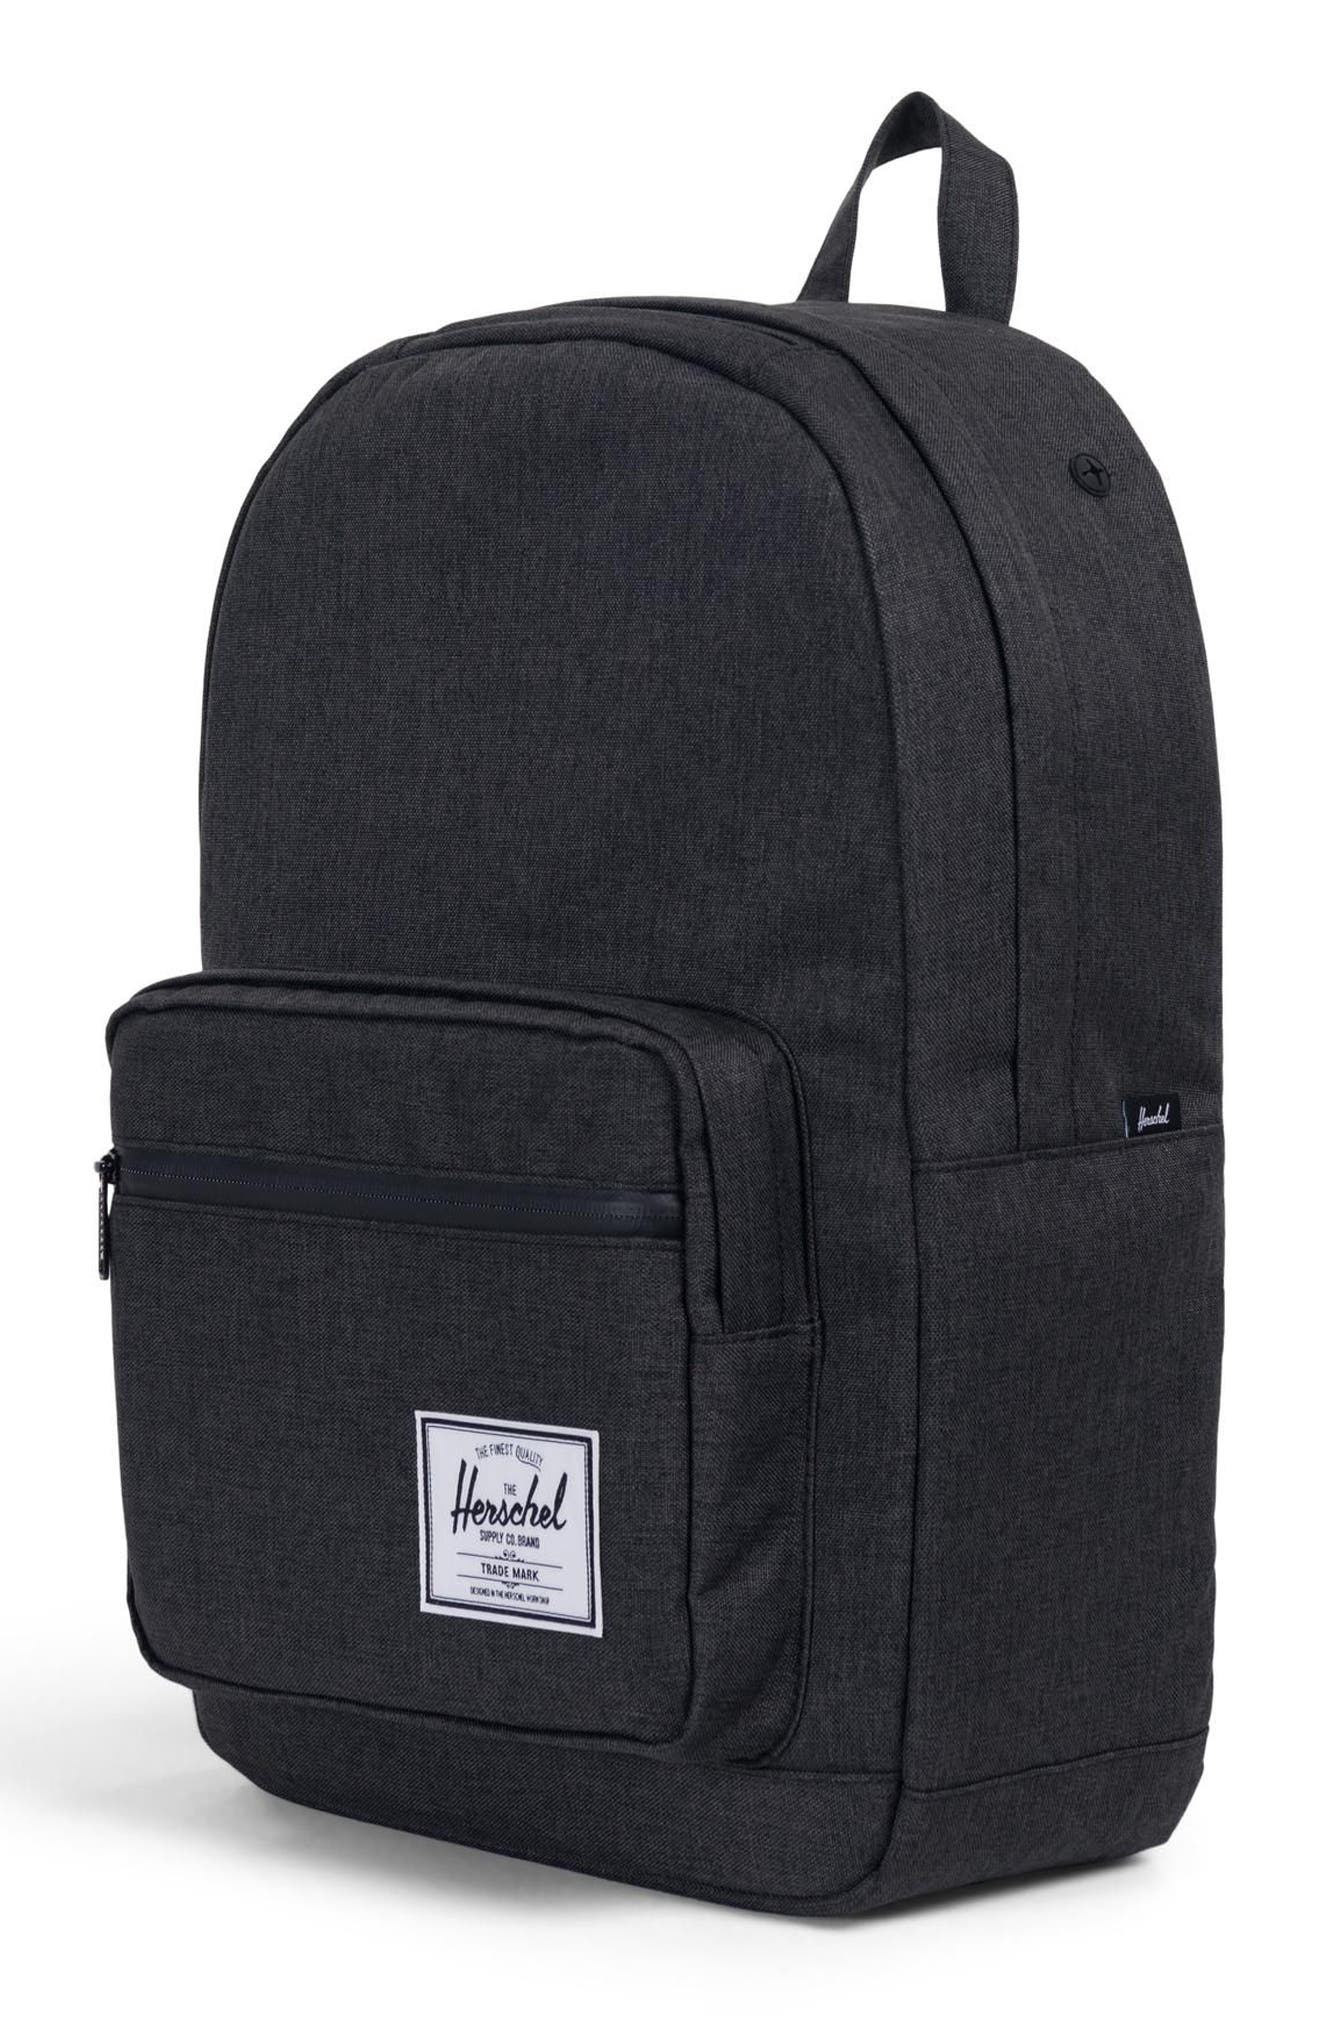 'Pop Quiz' Backpack,                             Alternate thumbnail 4, color,                             BLACK CROSSHATCH/ BLACK RUBBER